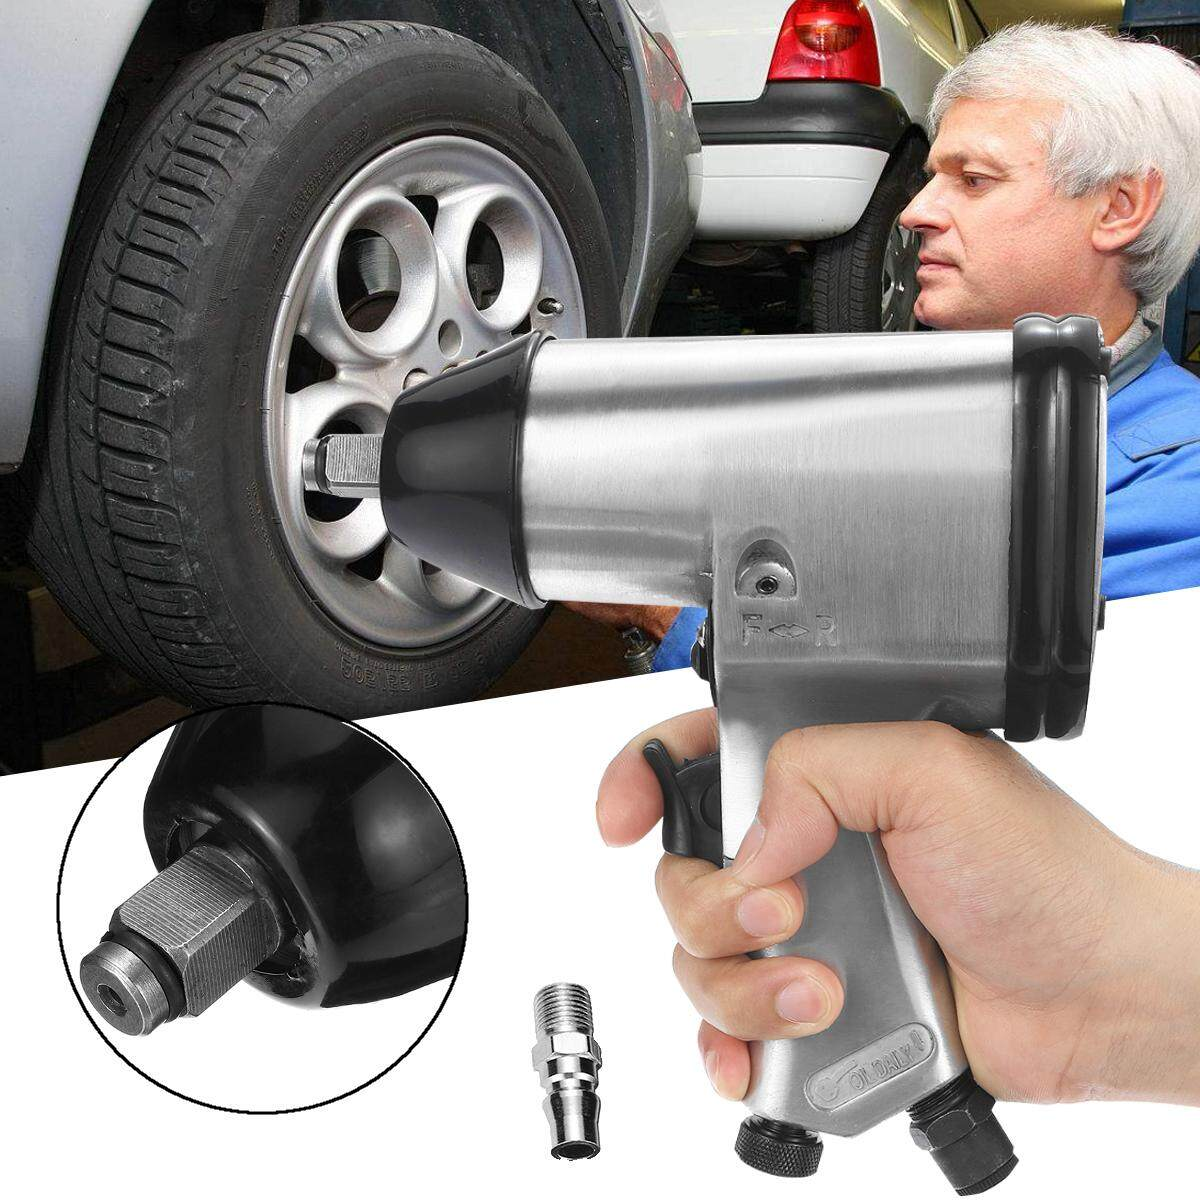 【Free Shipping + Super Deal + Limited Offer】1/2 Drive Heavy Duty Pneumatic Air Impact Wrench Tool For Car Wheel Repairing